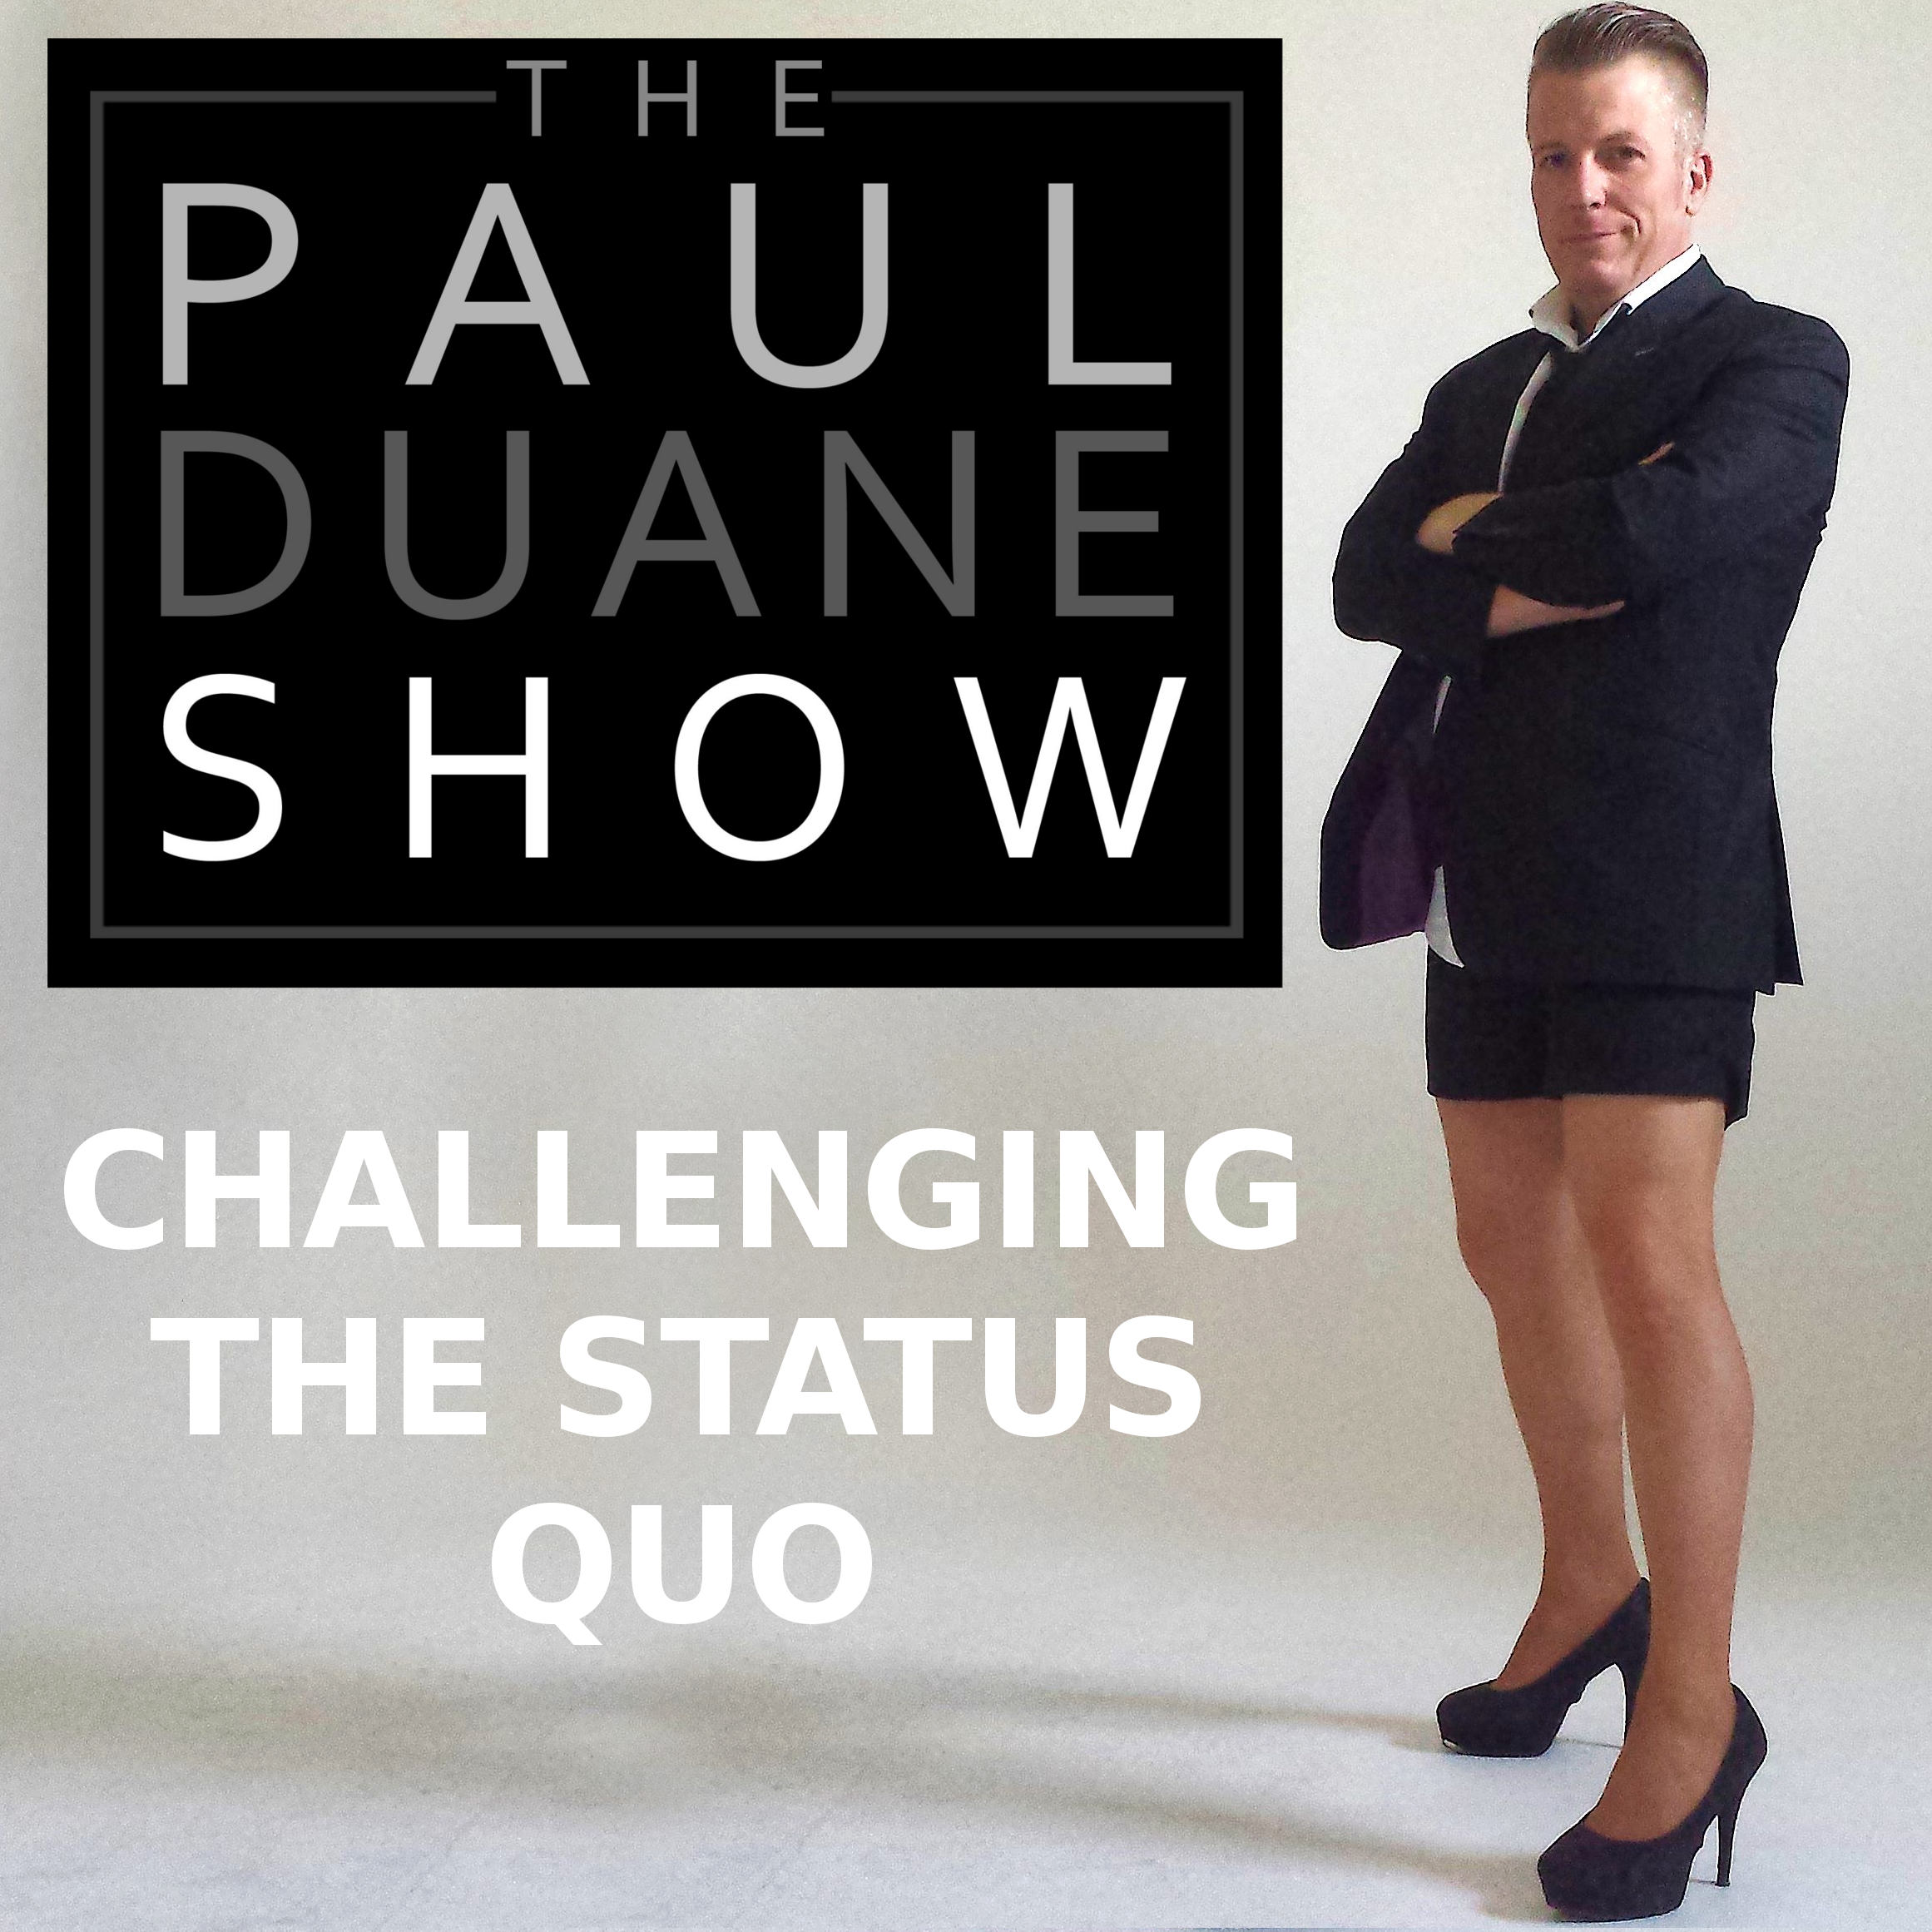 The Paul Duane Show Podcast